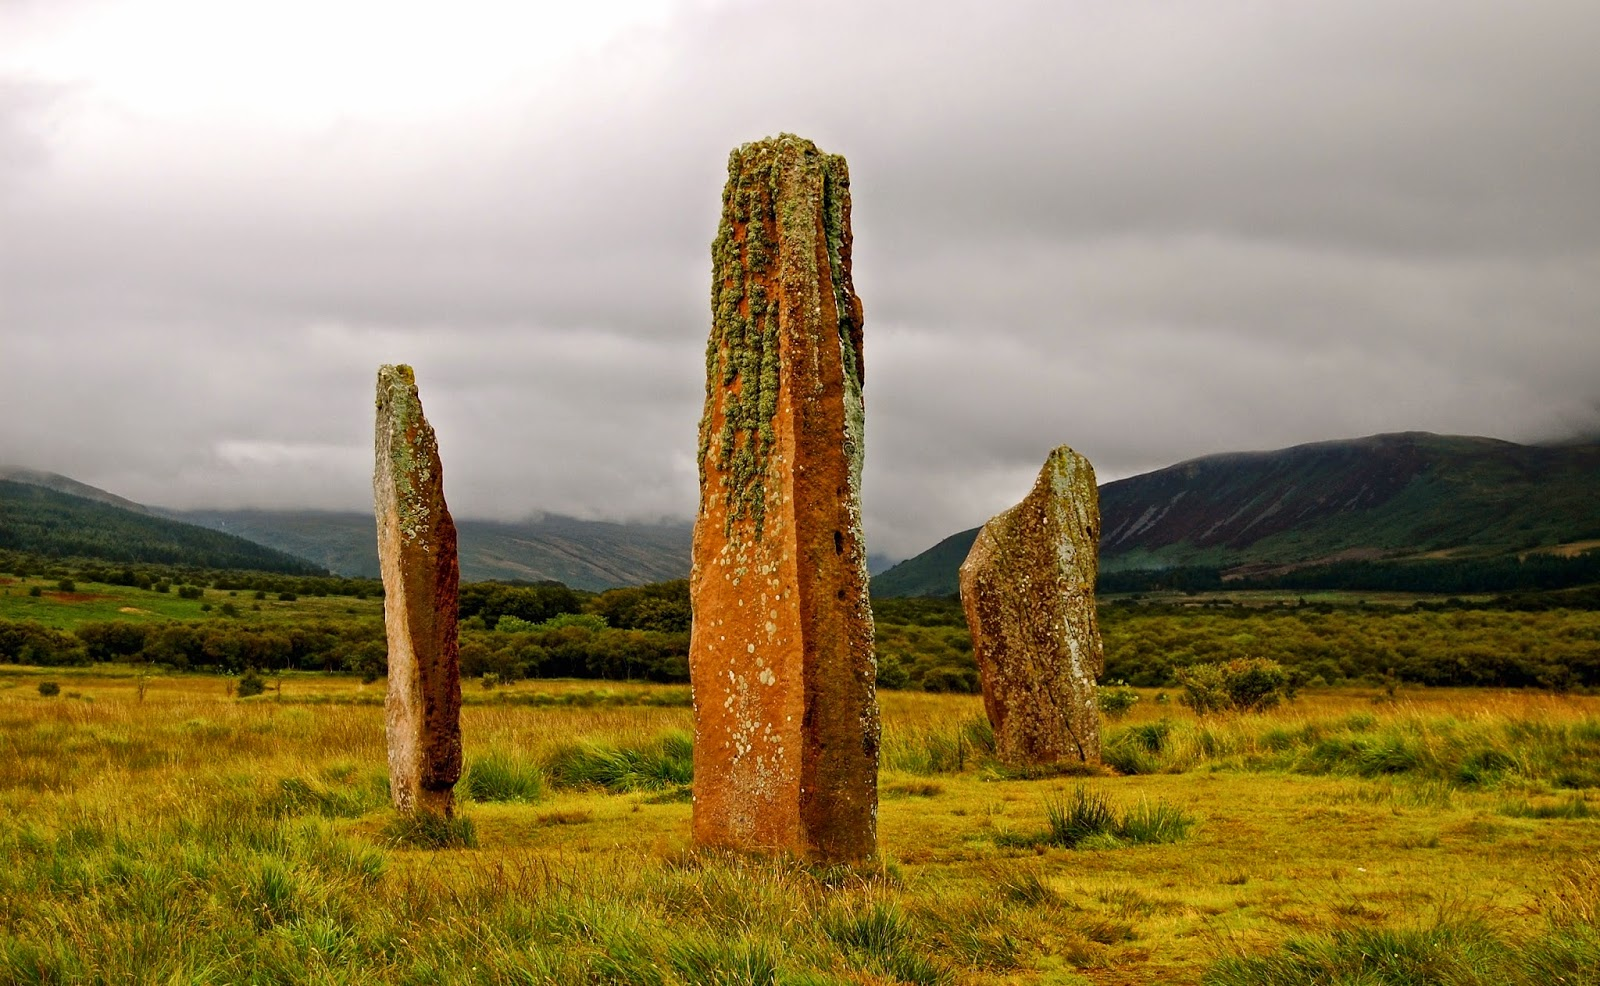 Machrie Moor stone circle; Isle of Arran, Scotland